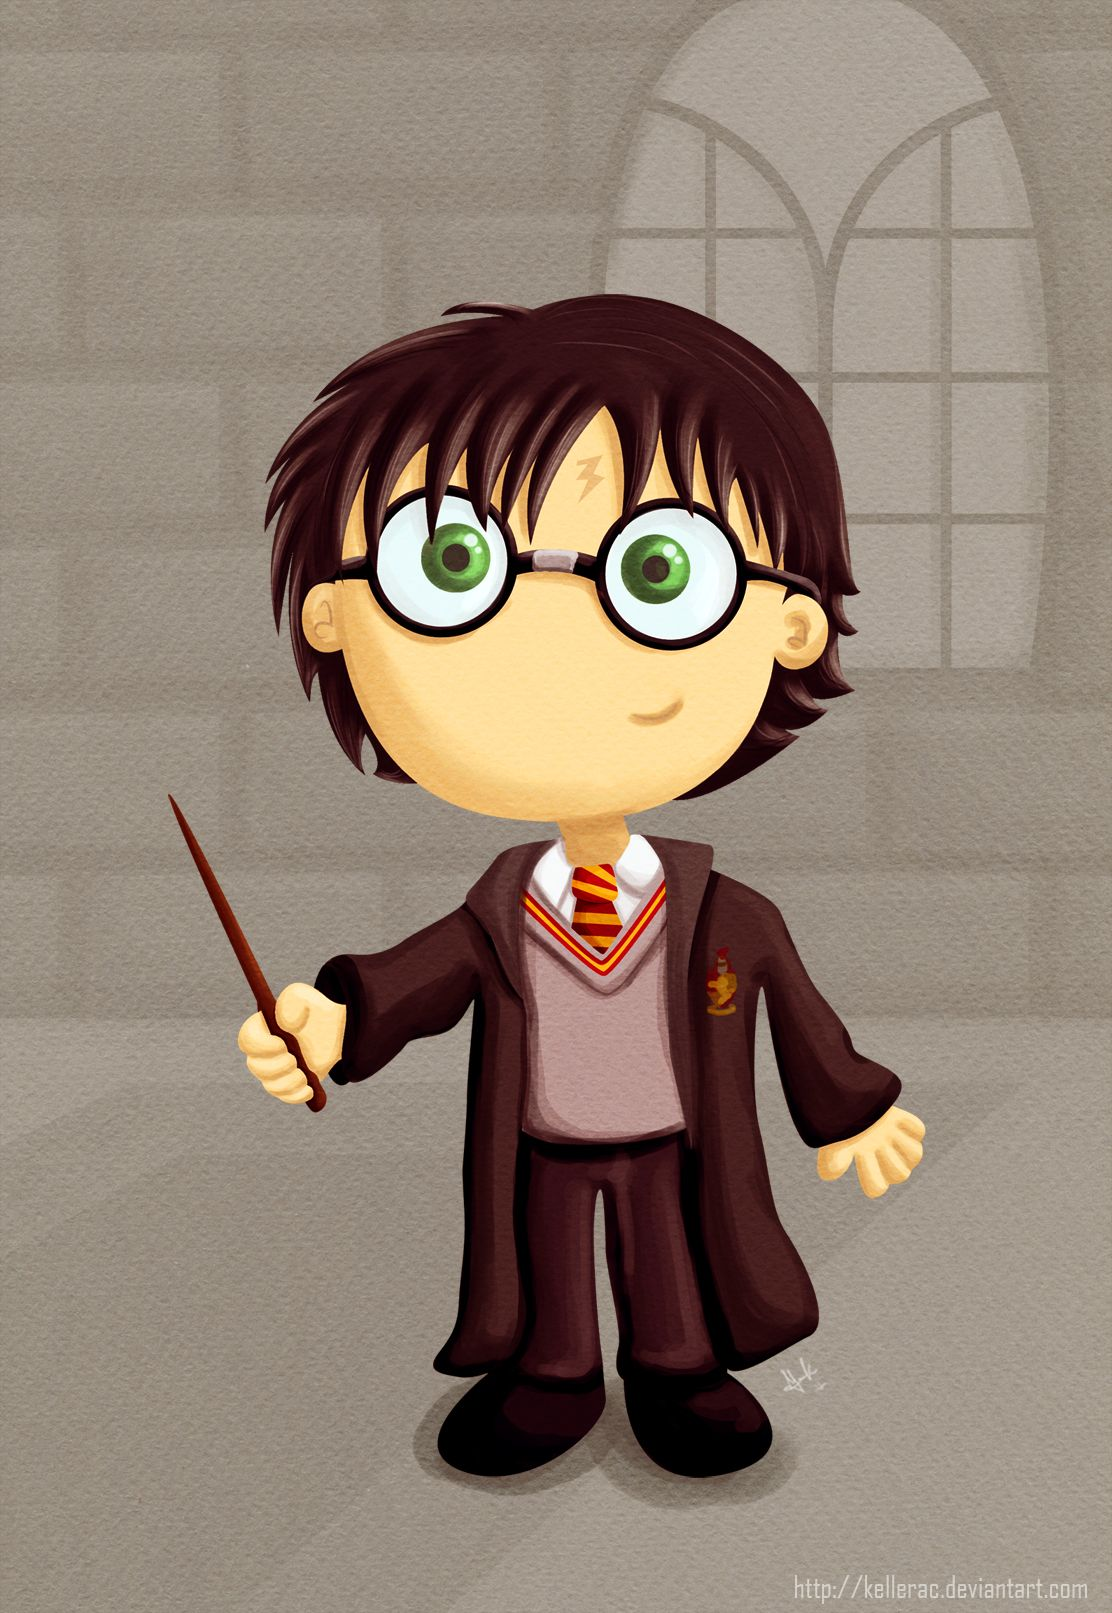 Simple Wallpaper Harry Potter Cartoon - c476ab57520dddb00c9afedf7b4a2778  Perfect Image Reference_336550.jpg